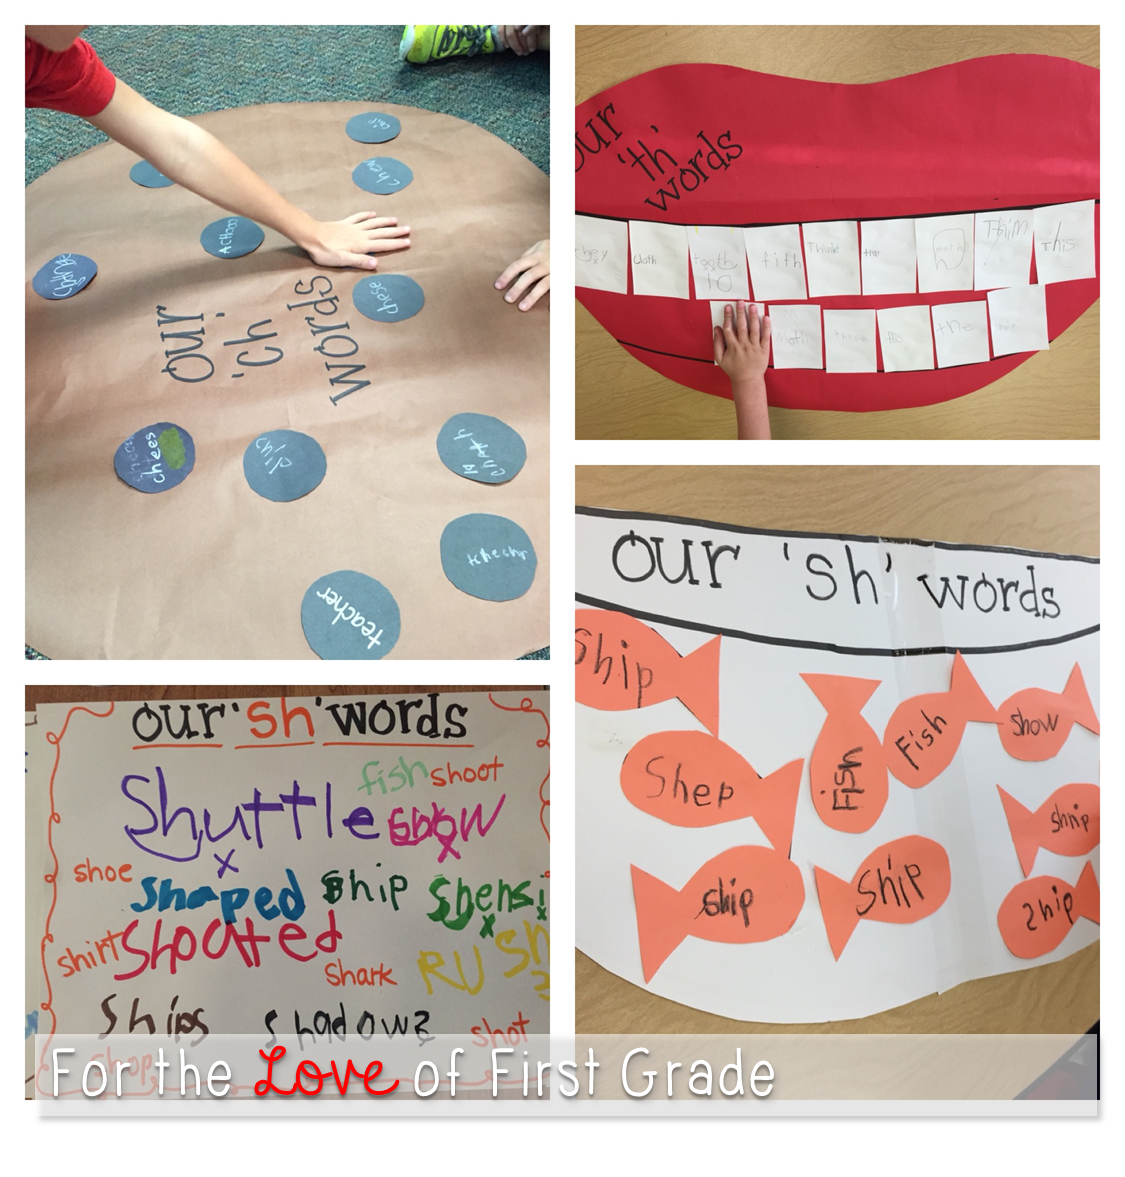 Th Ch And Sh Words Using A Giant Pictorial As A Clue To